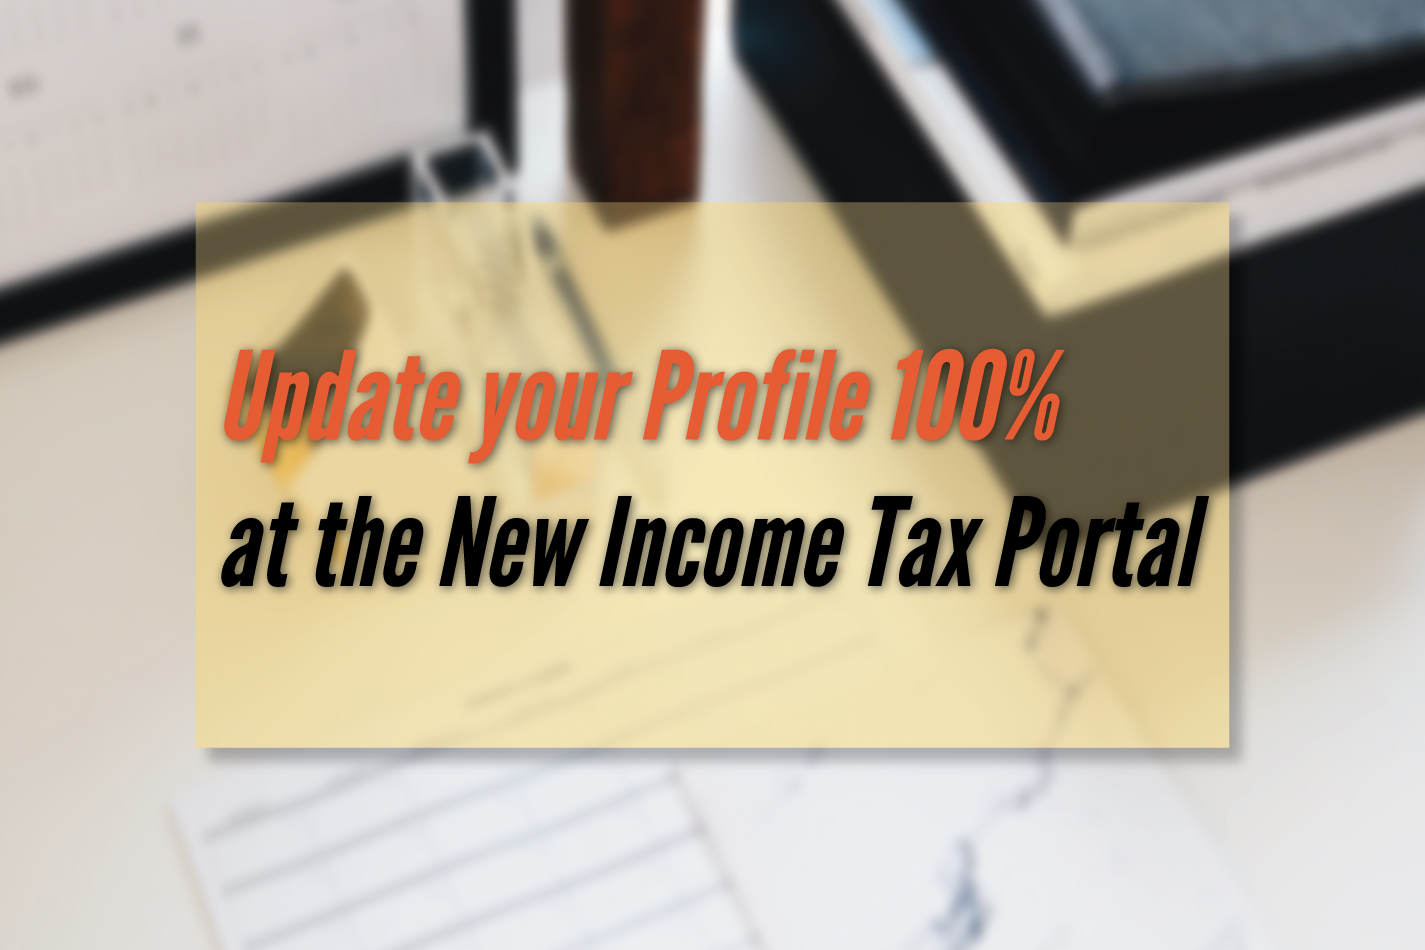 Update your profile 100% at New income tax portal